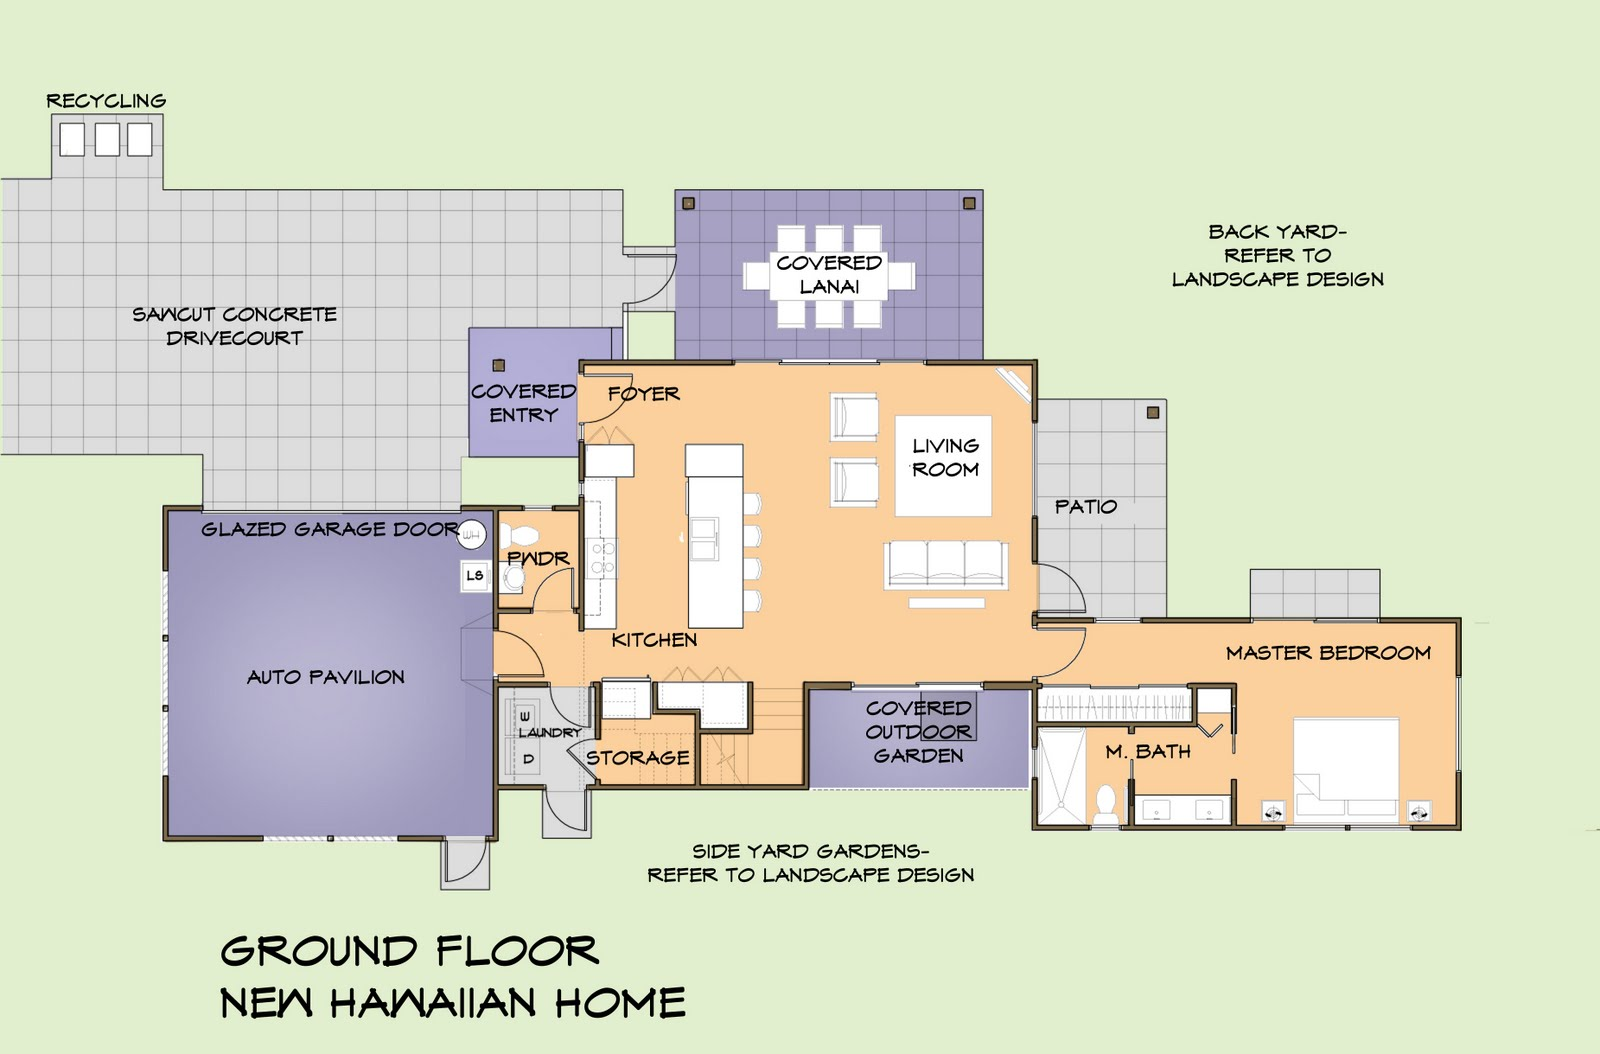 moreover landscape design house plan on hawaii home designs and plans 100 green home floor plans sloping roof house villa design house plans designs for